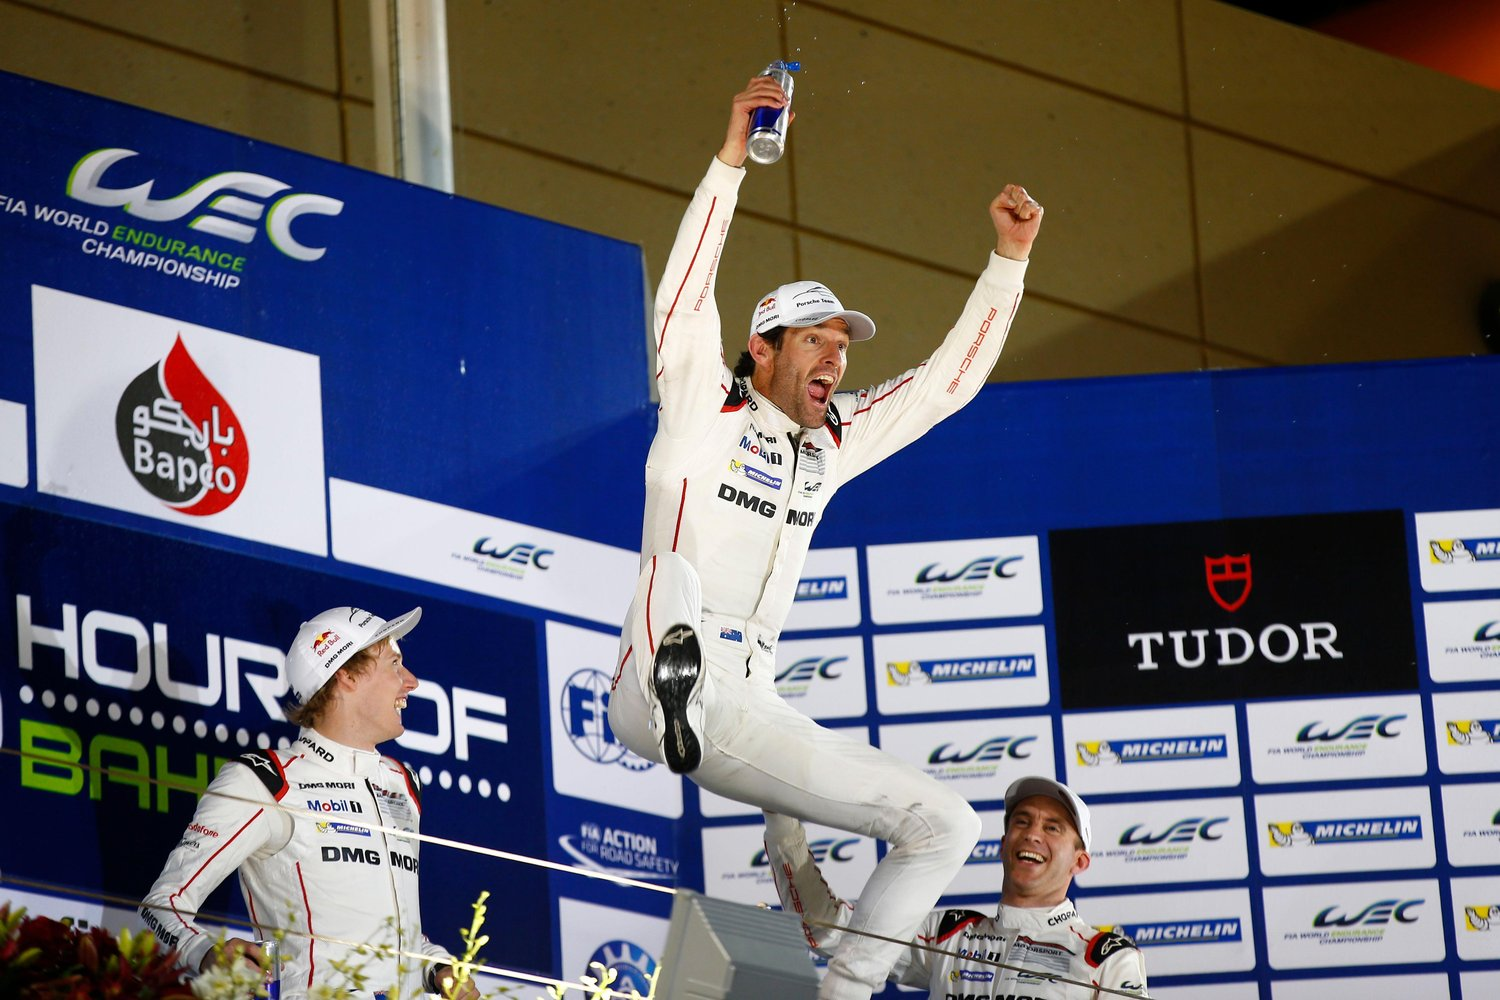 Webber won the 2015 WEC Driver's Championship